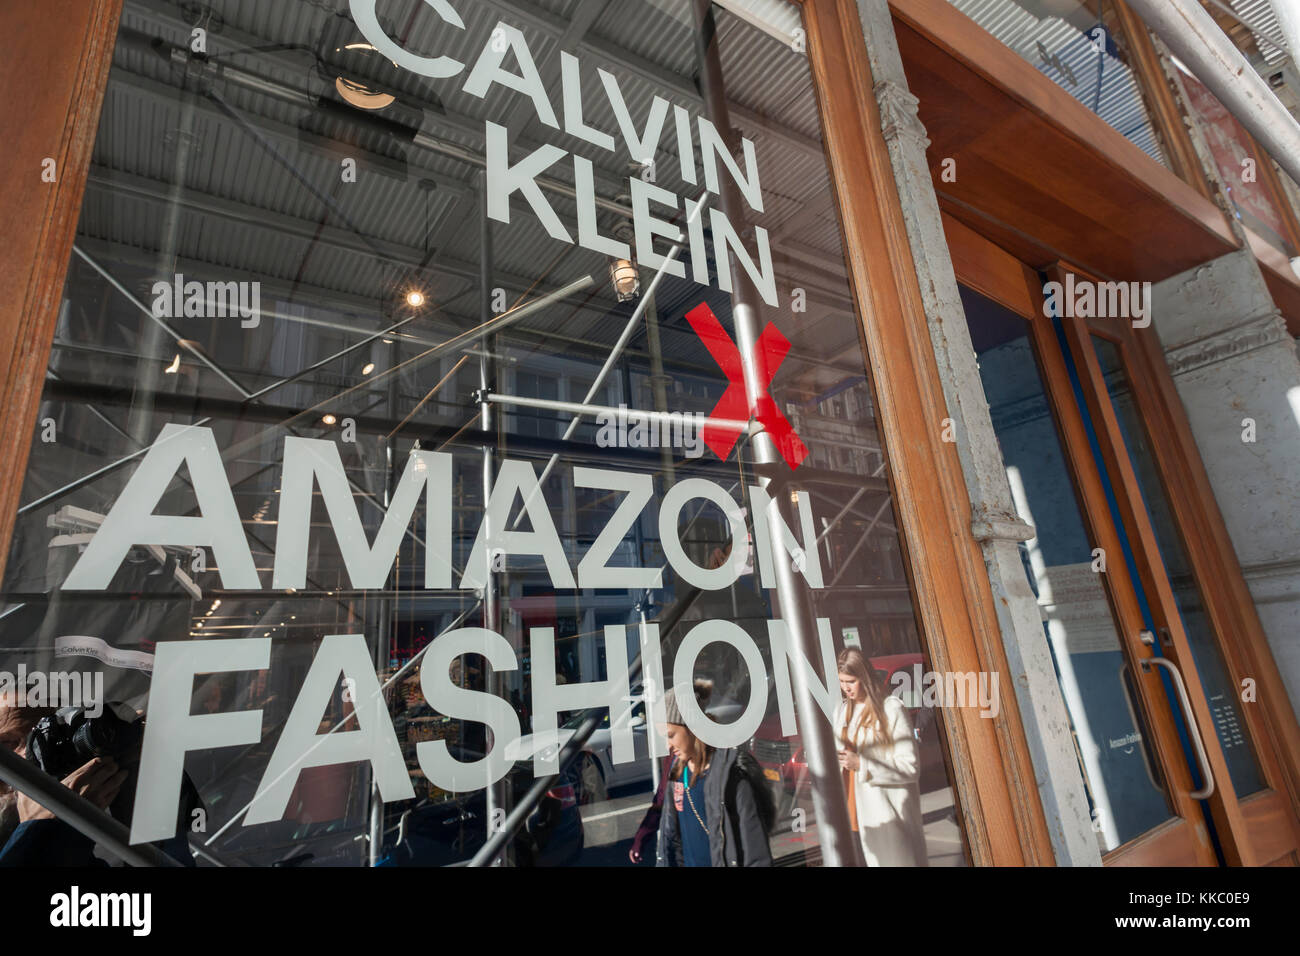 die calvin klein amazon mode zusammenarbeit pop up. Black Bedroom Furniture Sets. Home Design Ideas